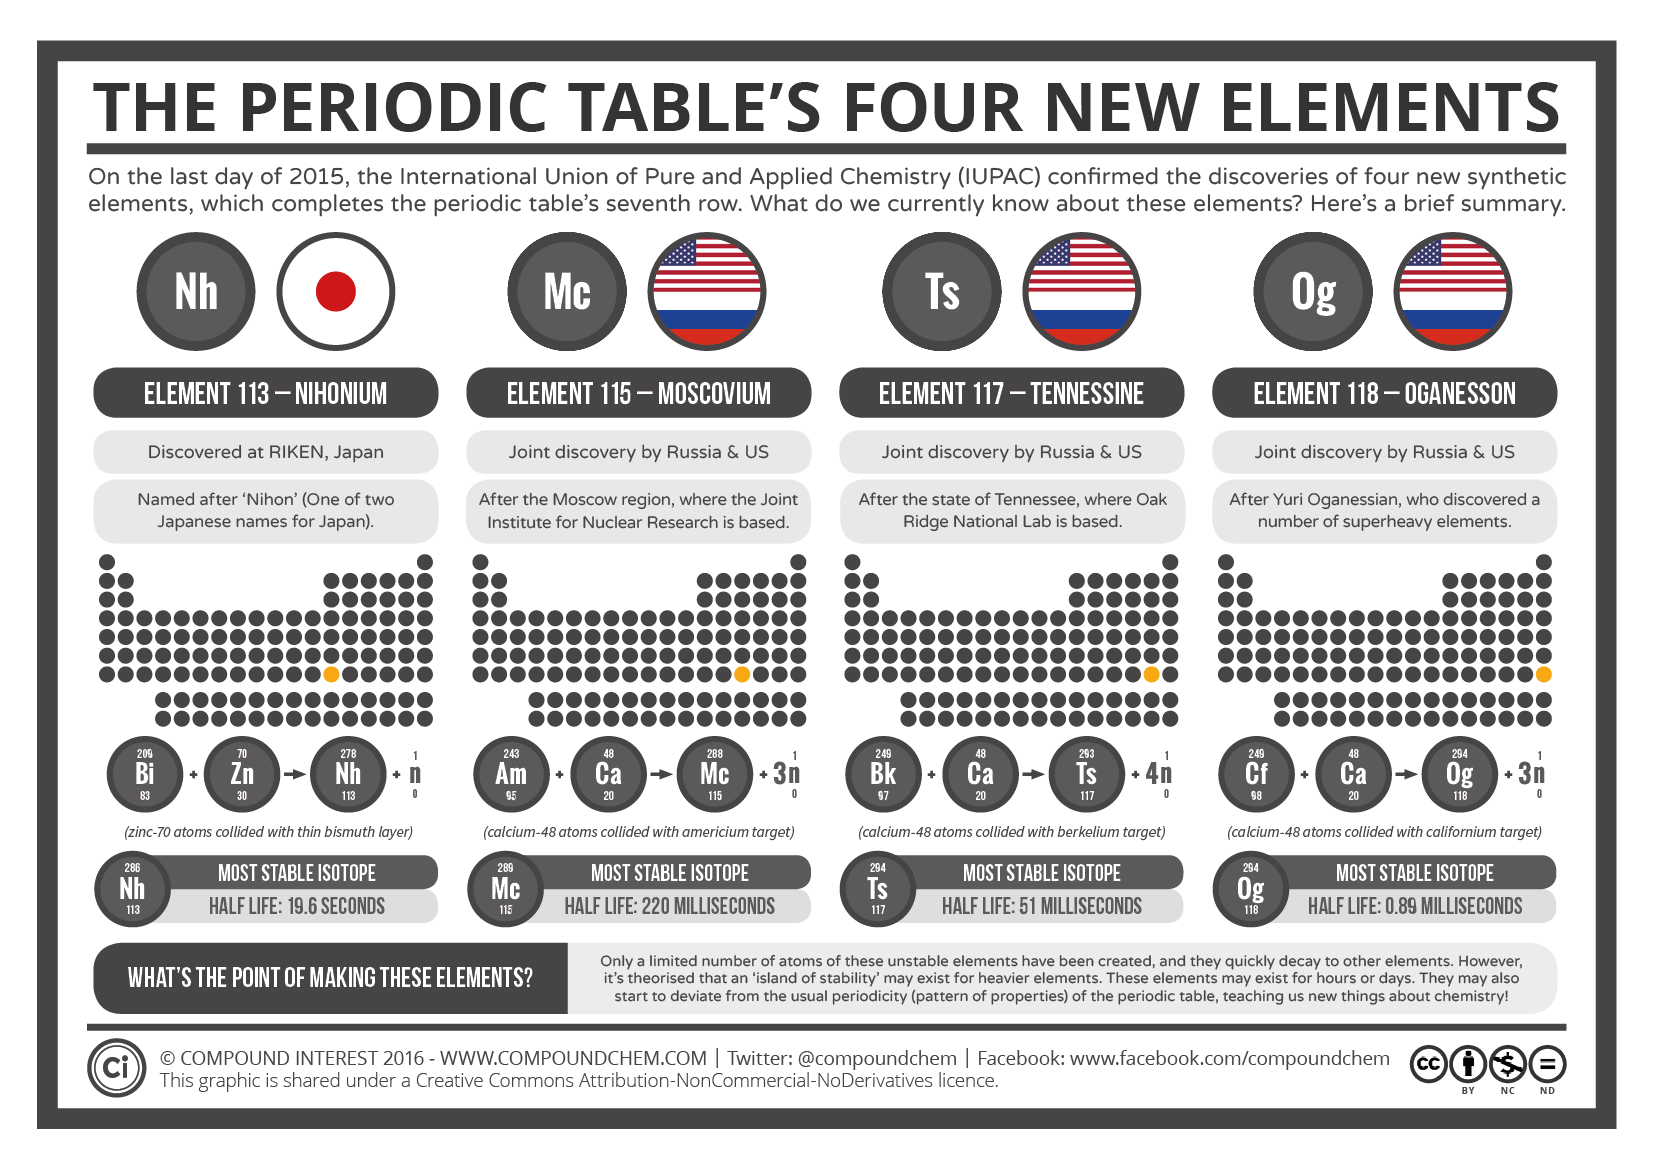 the periodic tables 4 new elements update 2016 - Periodic Table Of Elements Discovery